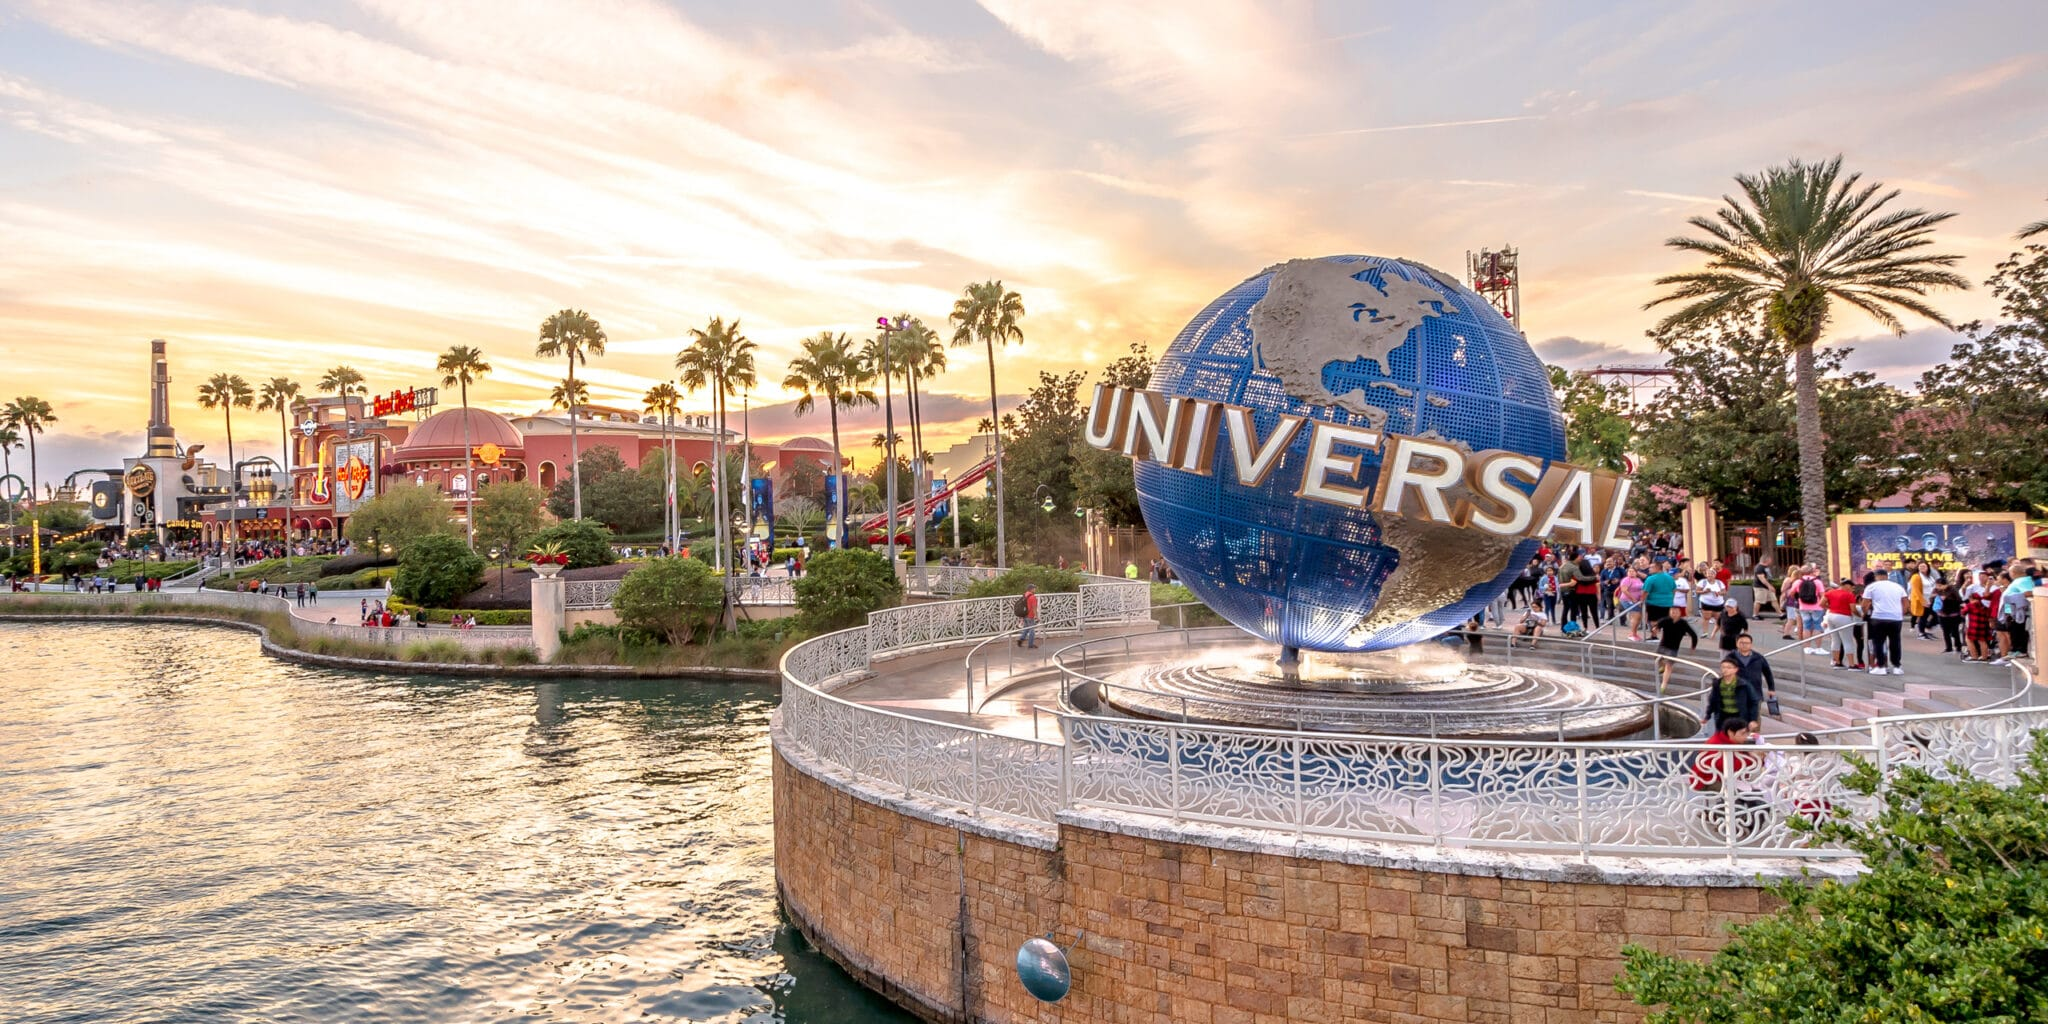 Universal Studios Hotels—Plan the Perfect Universal Orlando Vacation